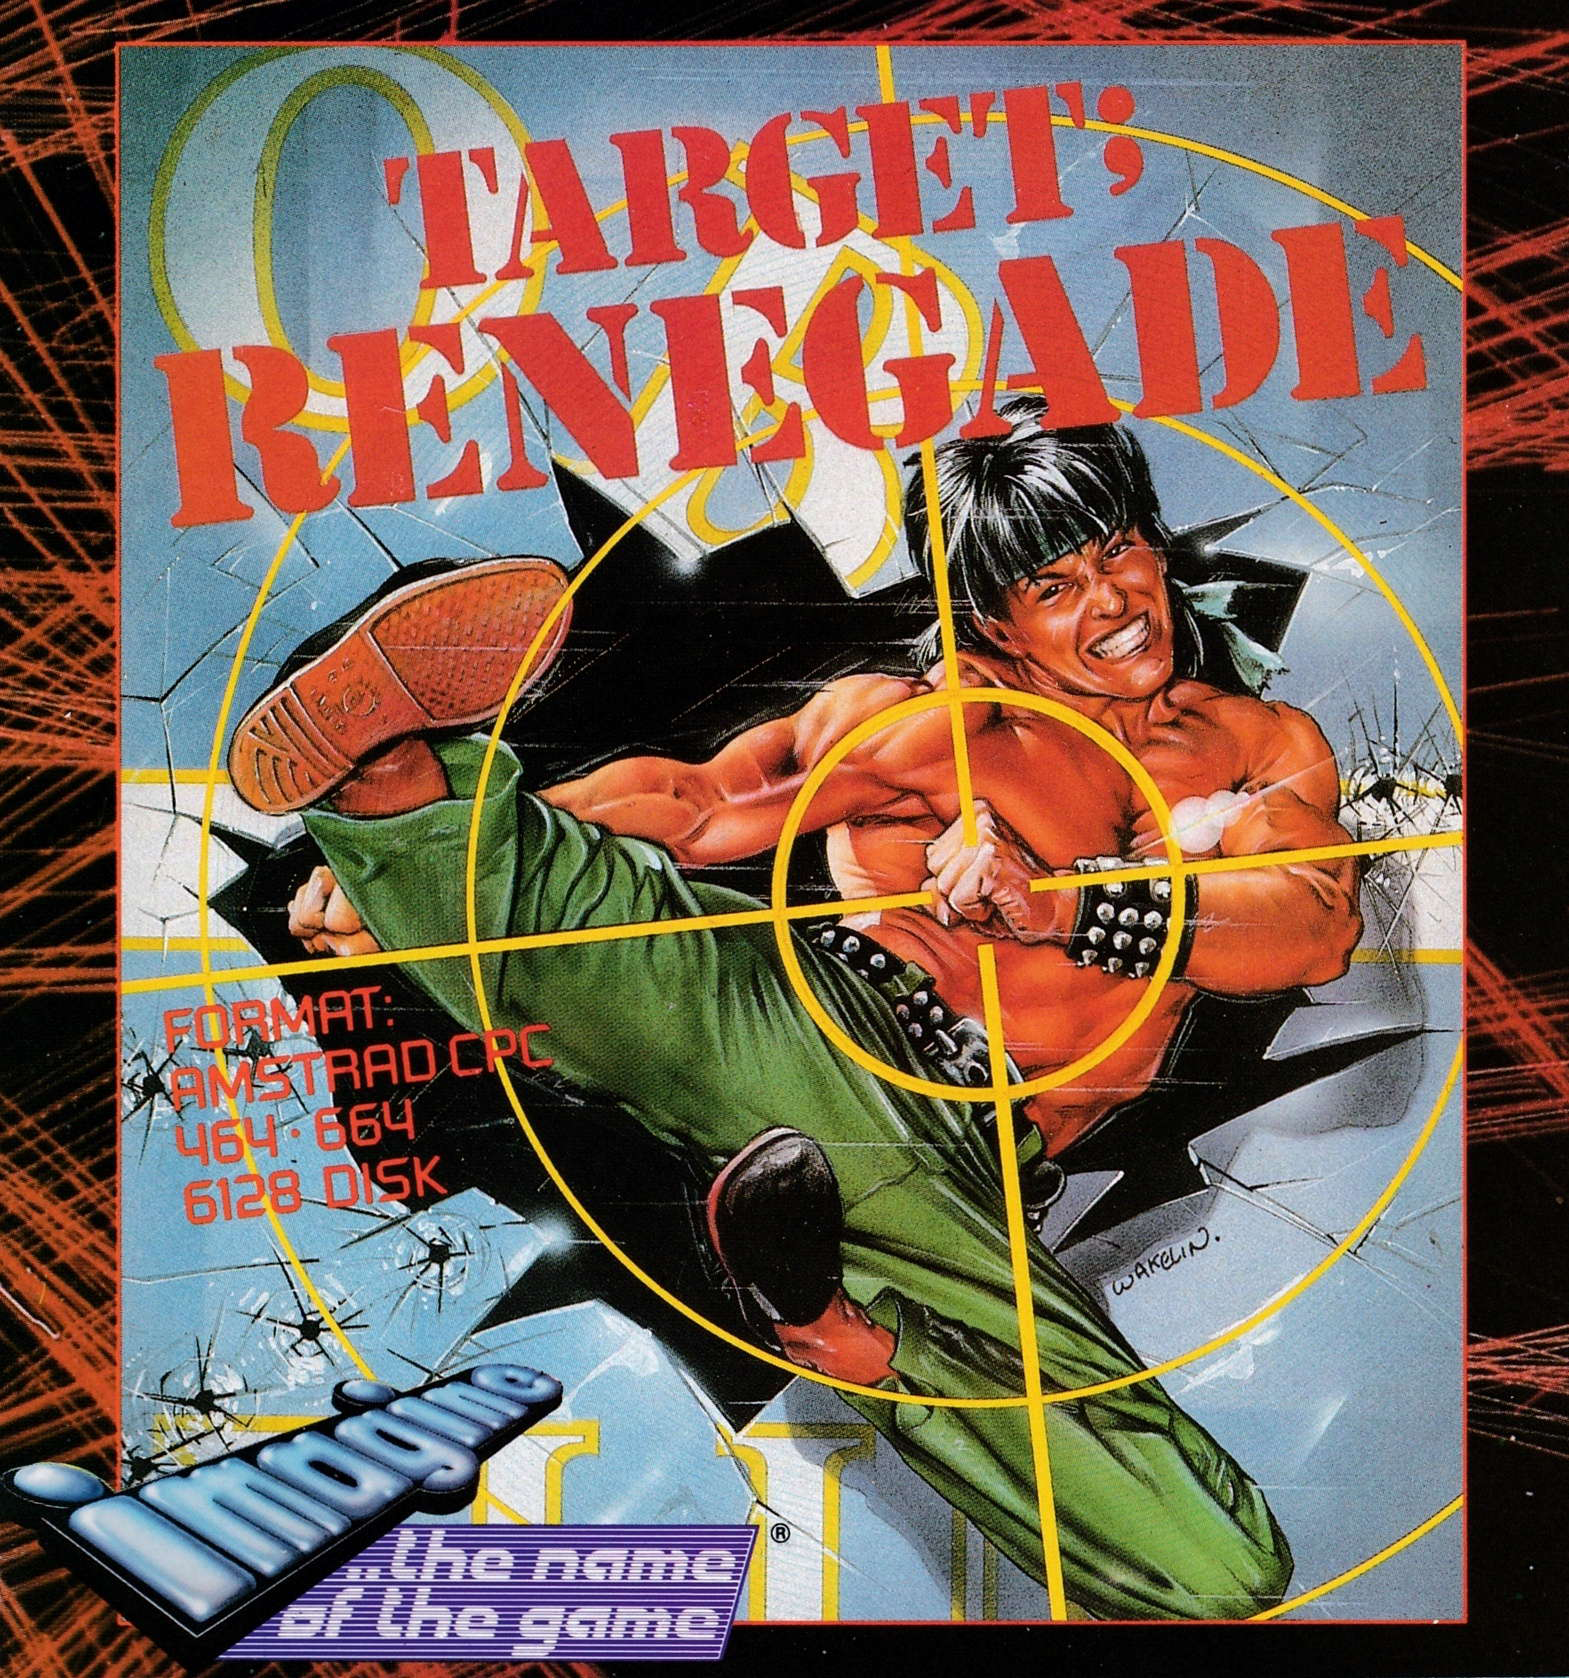 cover of the Amstrad CPC game Target Renegade  by GameBase CPC